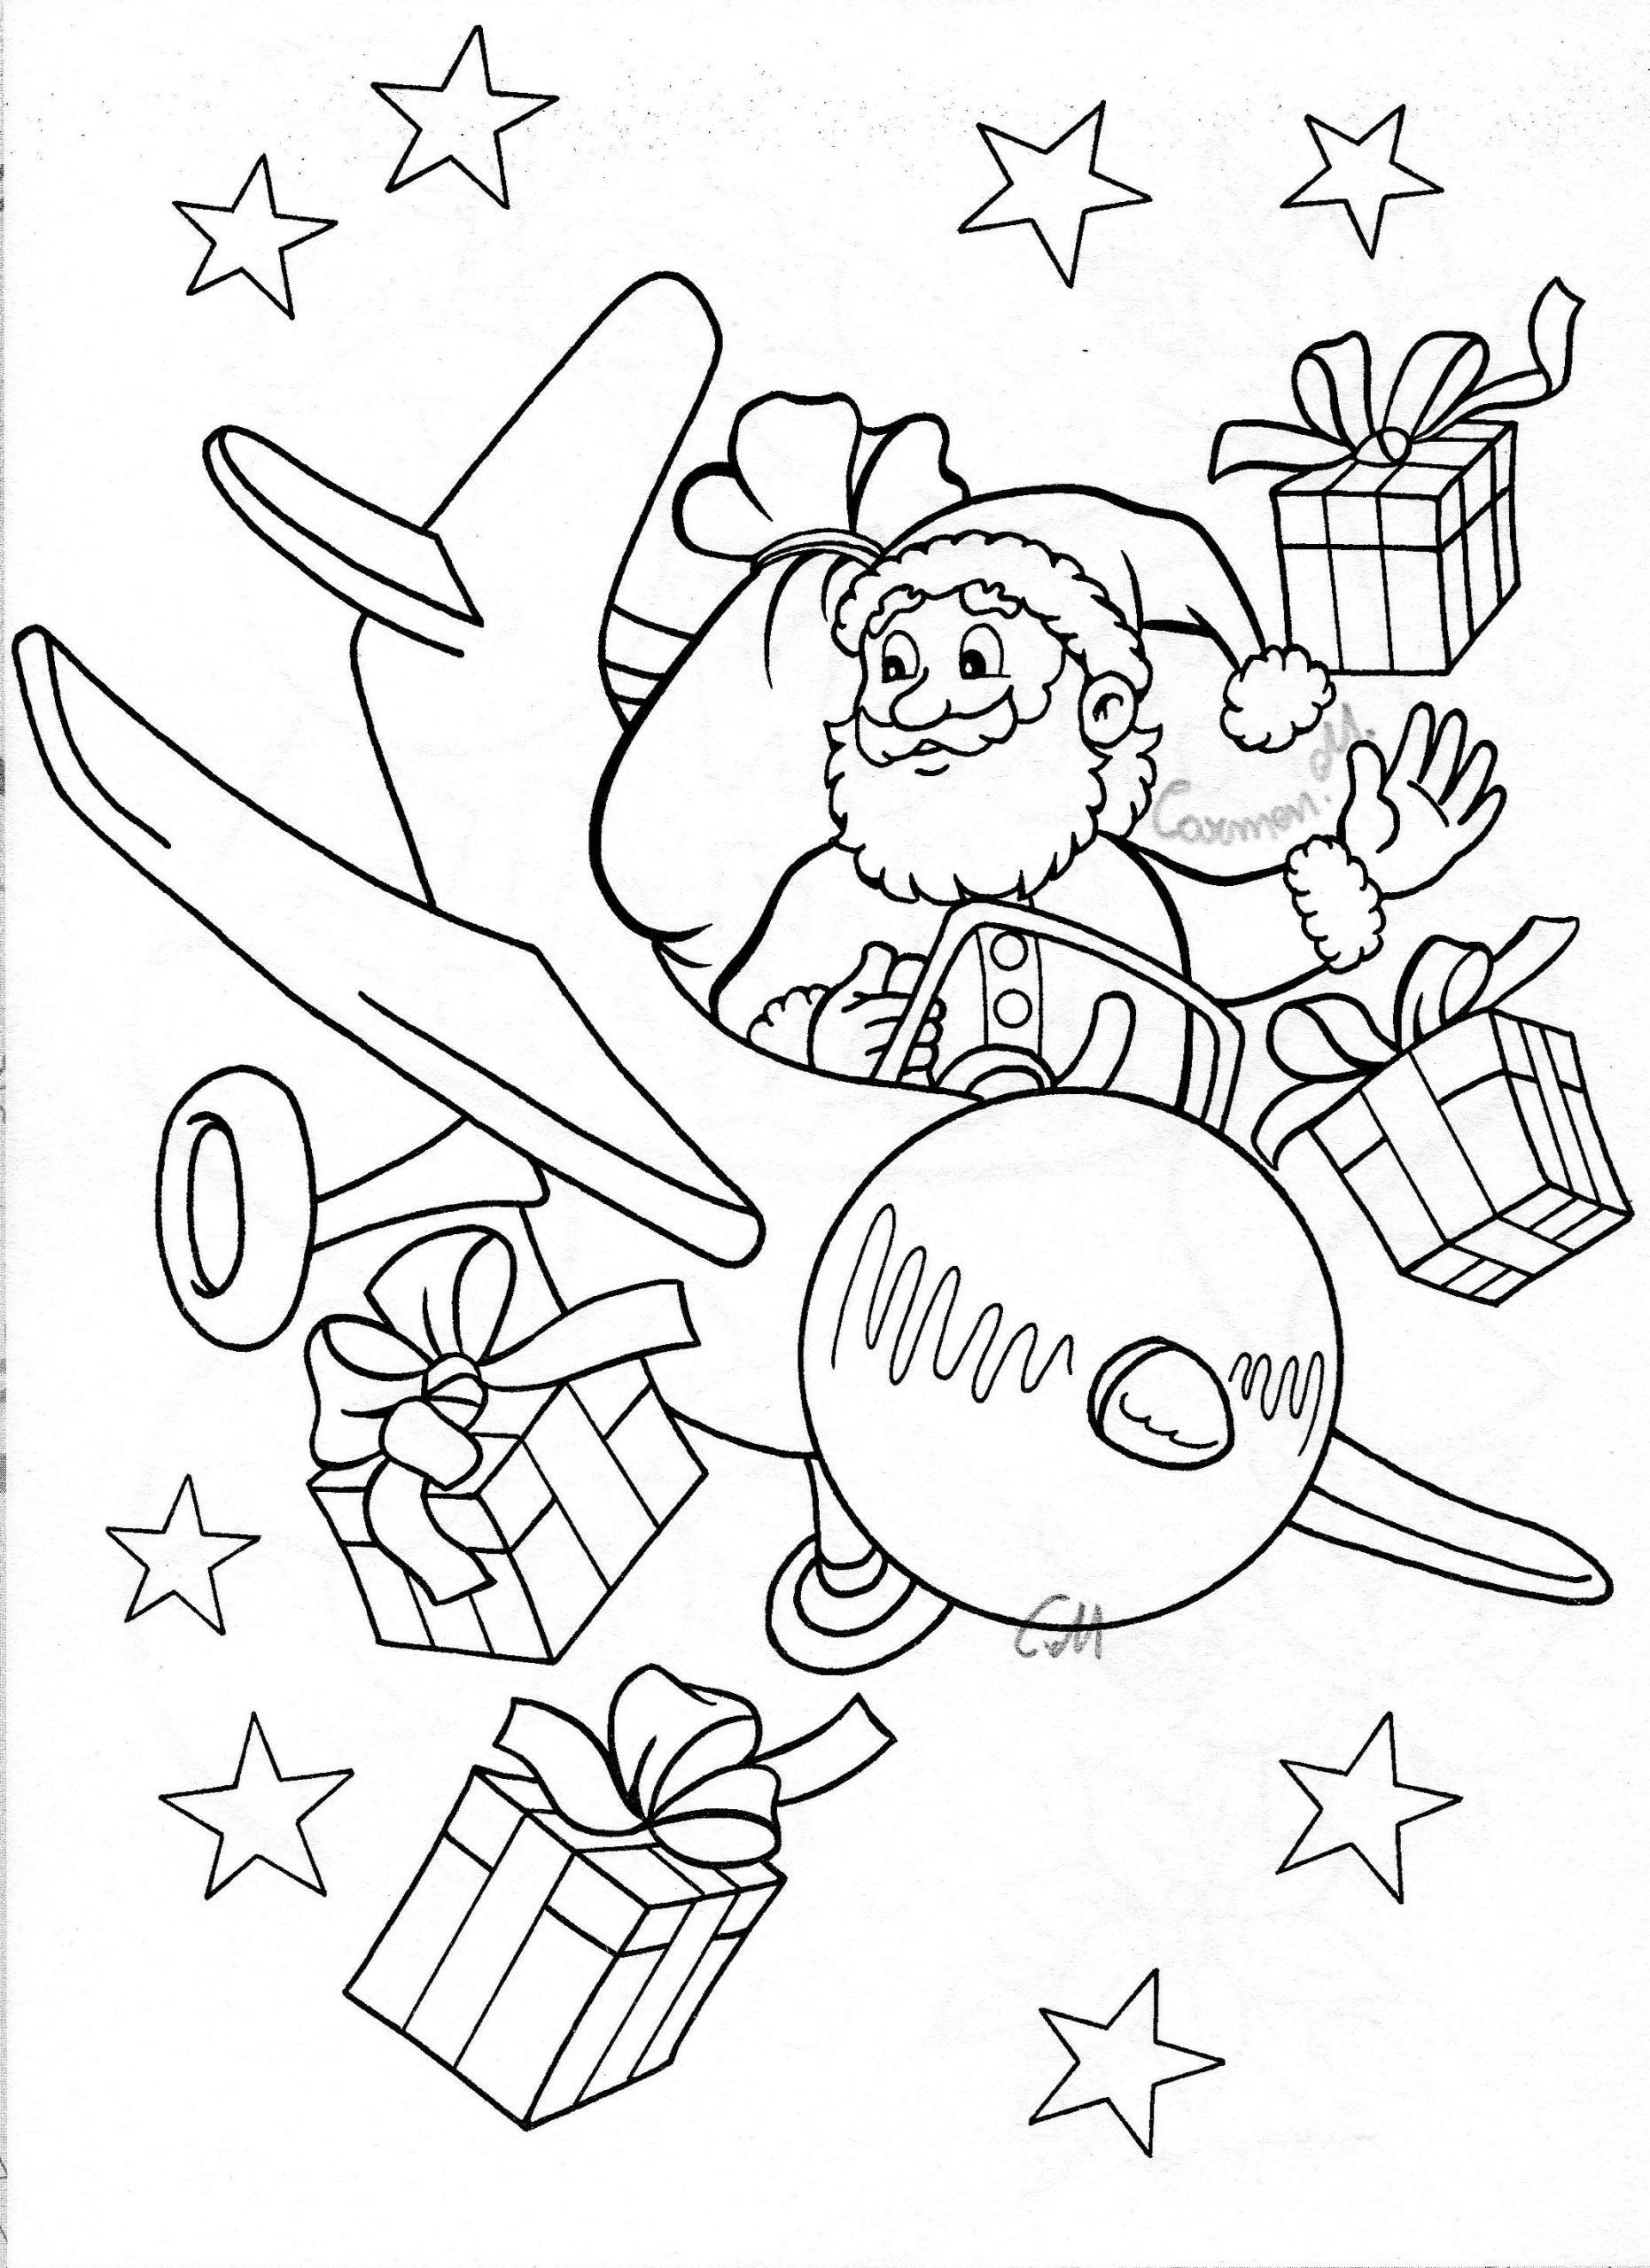 Happy Birthday Dinosaur Coloring Pages Coloring Pages Christmas Dinosaur Coloring Dinosaur Coloring Pages Happy Birthday Coloring Pages Birthday Coloring Pages